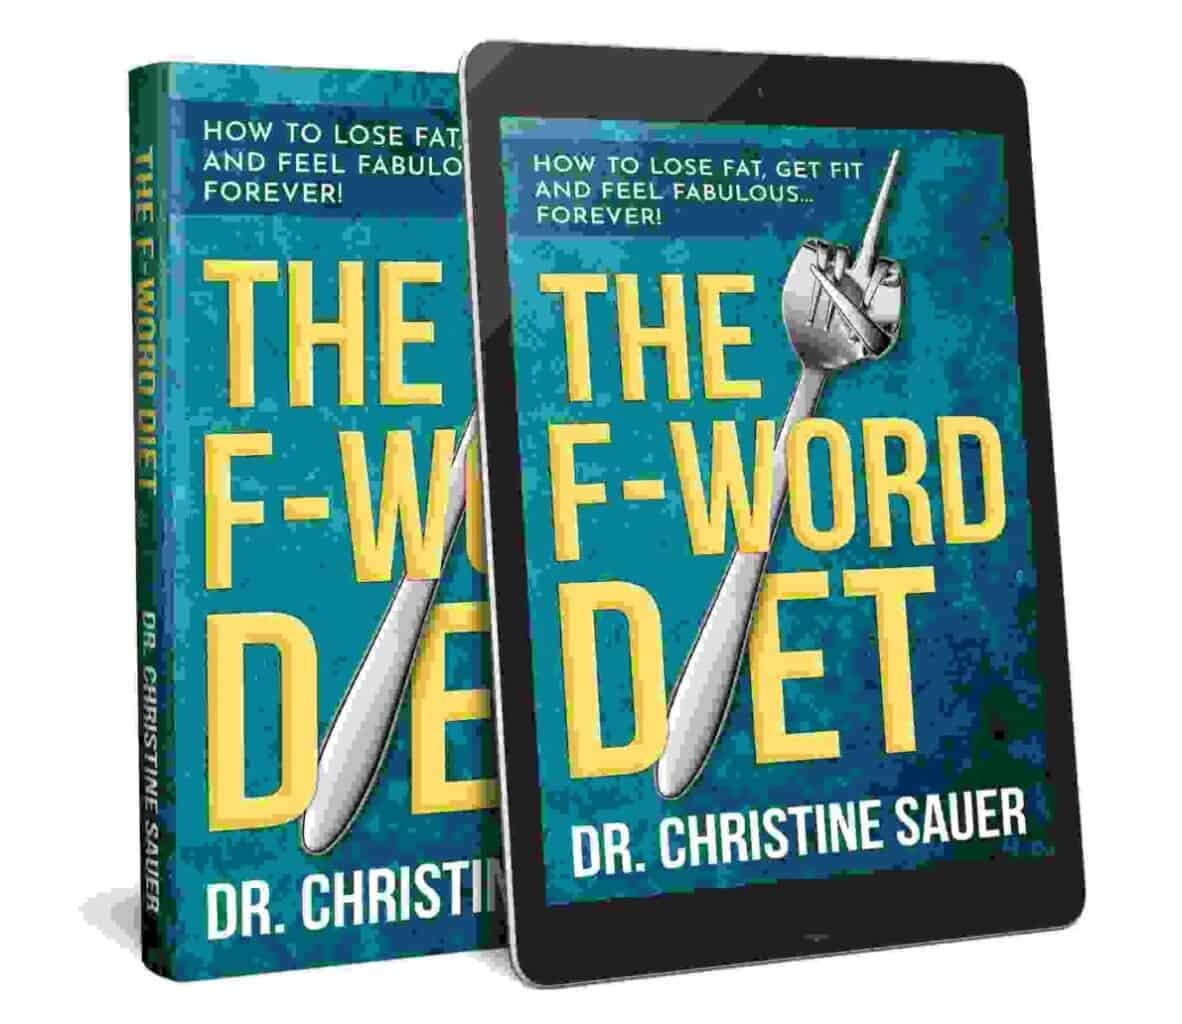 f-word-diet-cover